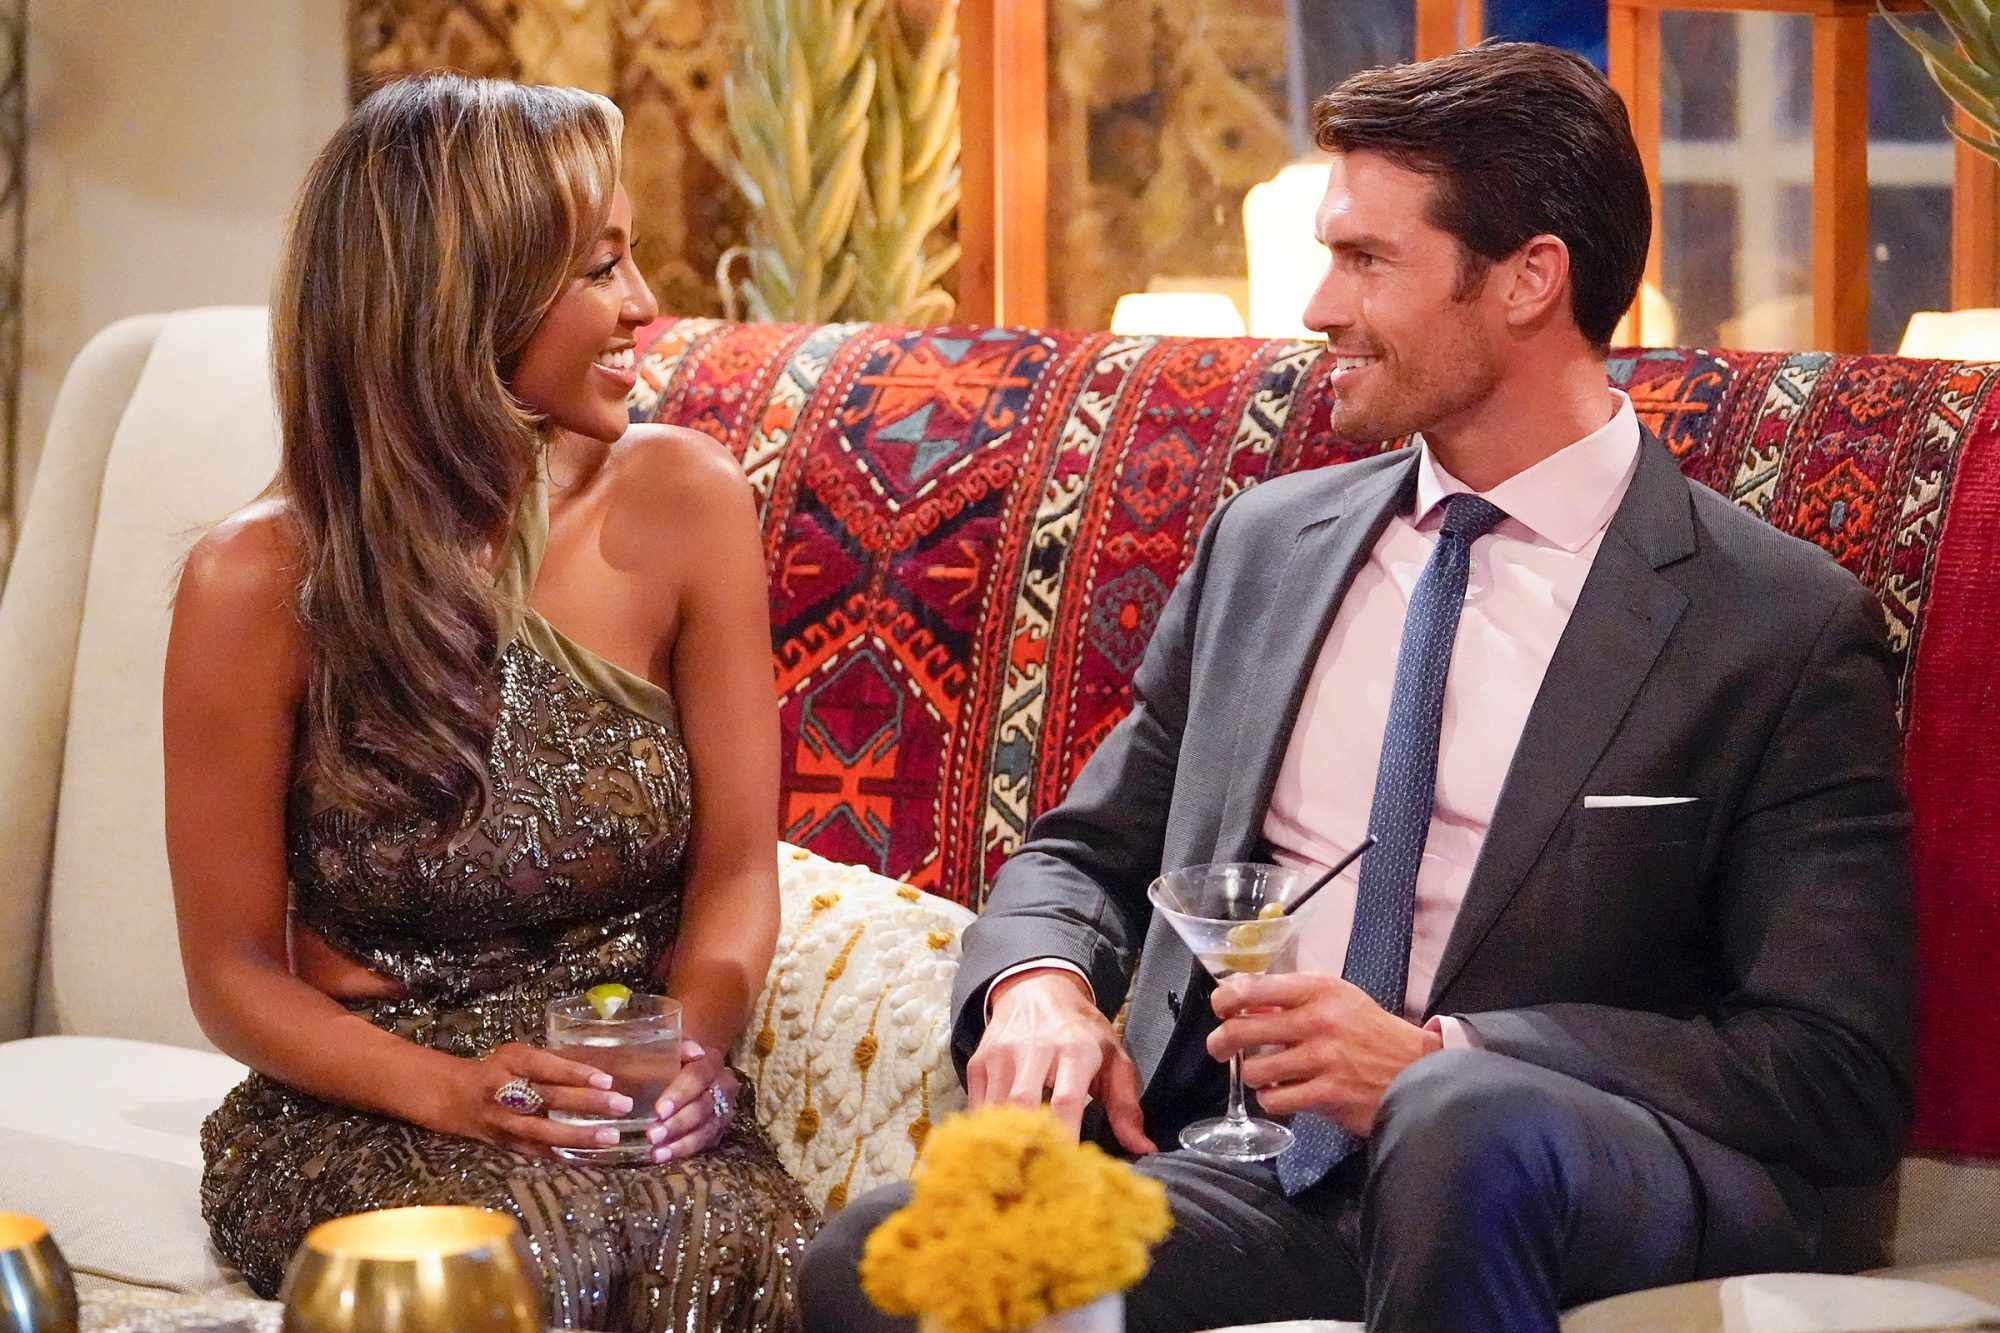 The Bachelorette: Tayshia Adams Officially Takes Over and Meets the Men |  PEOPLE.com